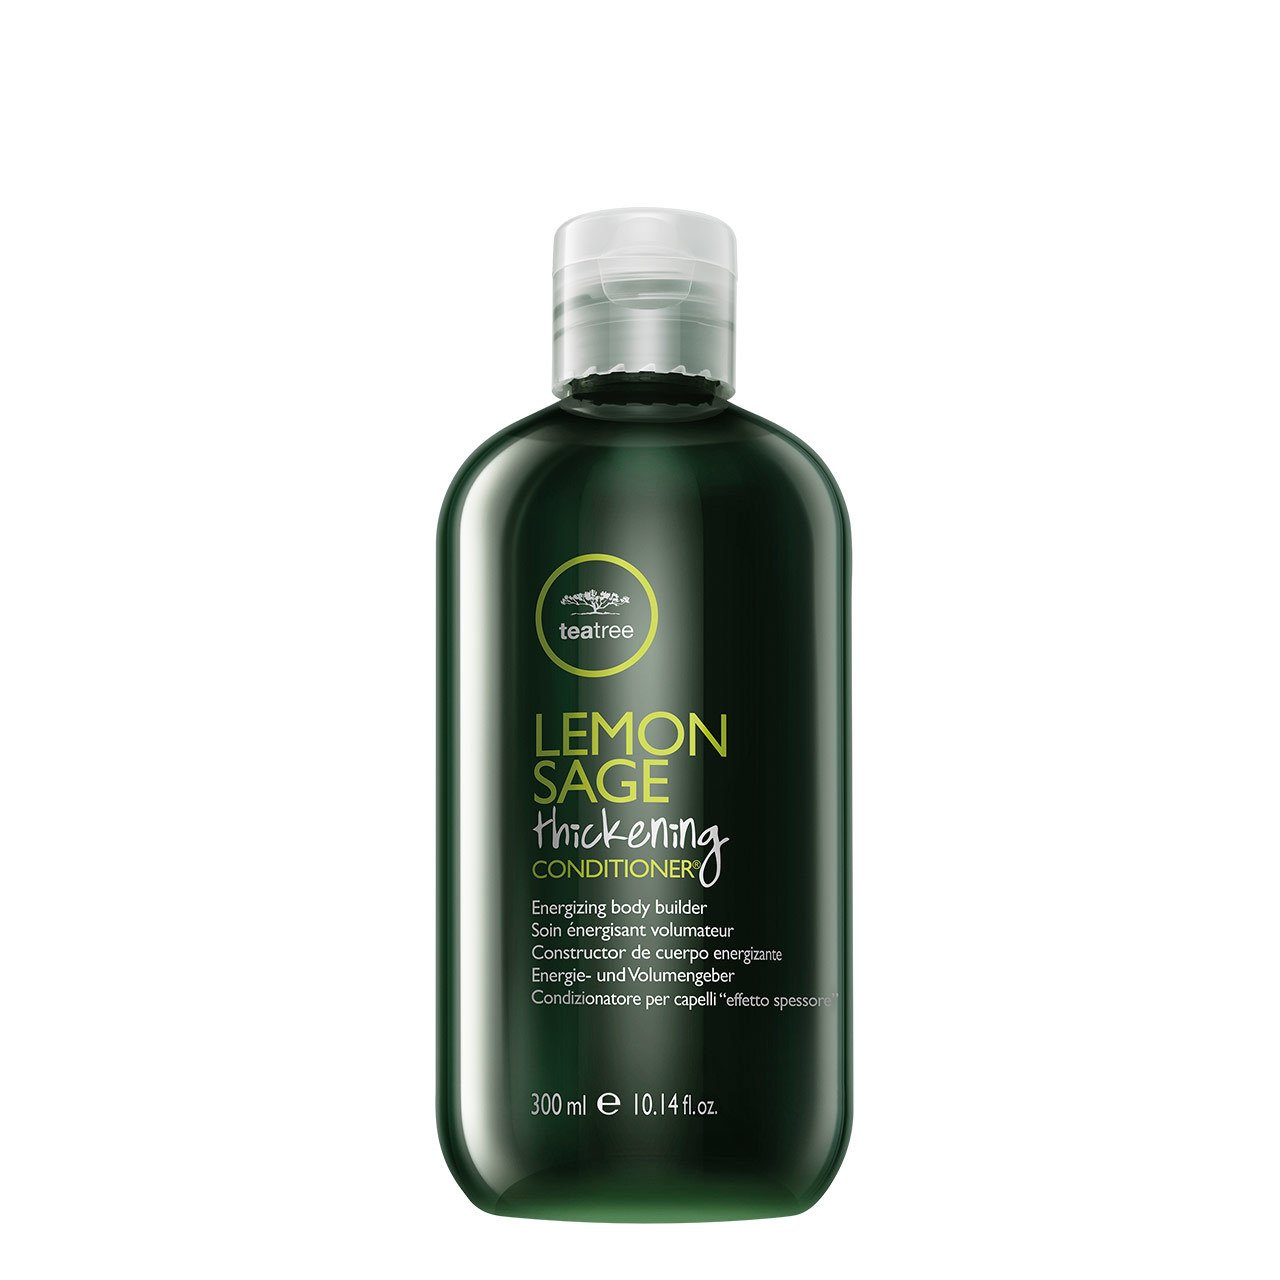 Paul Mitchell Tea Tree Lemon Sage Conditioner 300ml